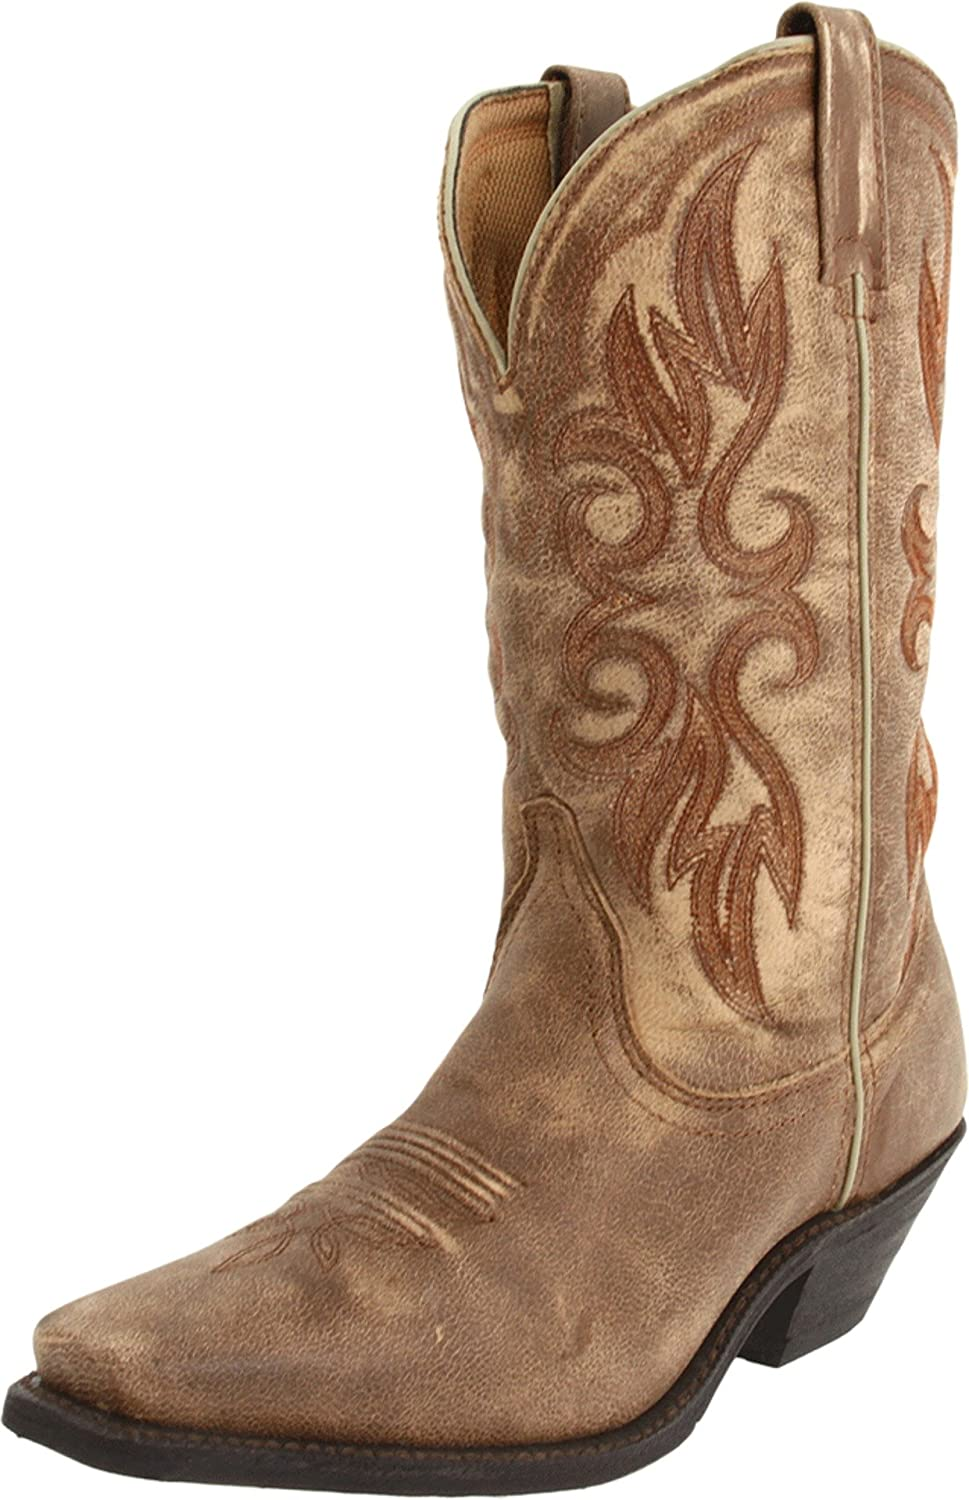 Laredo Women's Maricopa Boot B007CO07ZK 10 B(M) US|Tan/Tan Crackle Goat